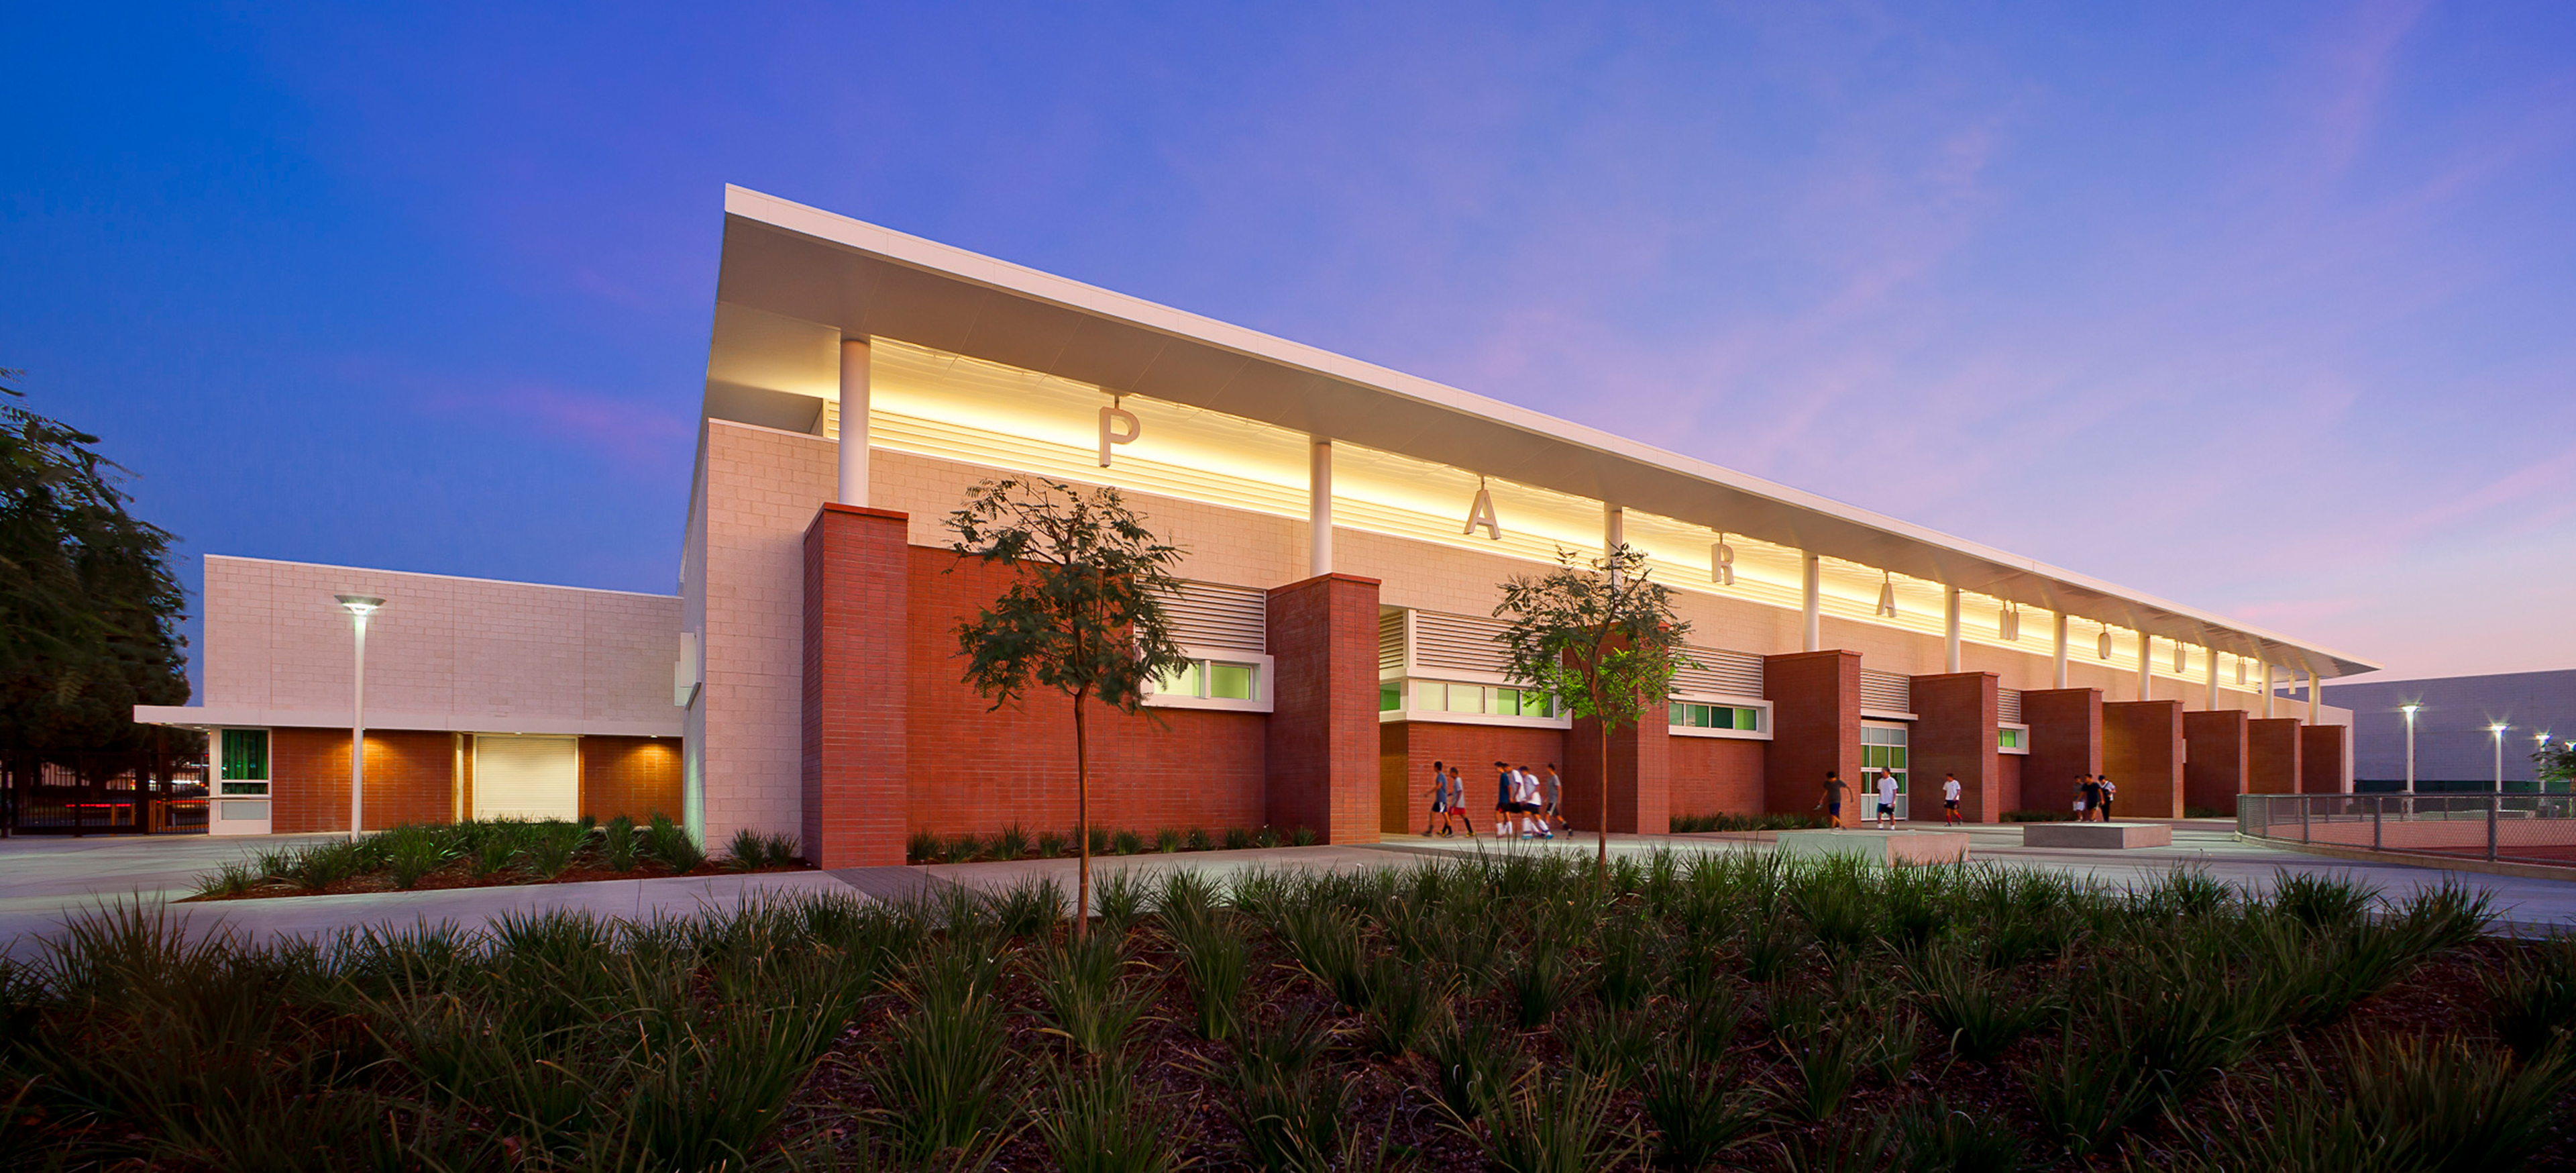 LPA Receives Triple Honors for K-12 Schools Design